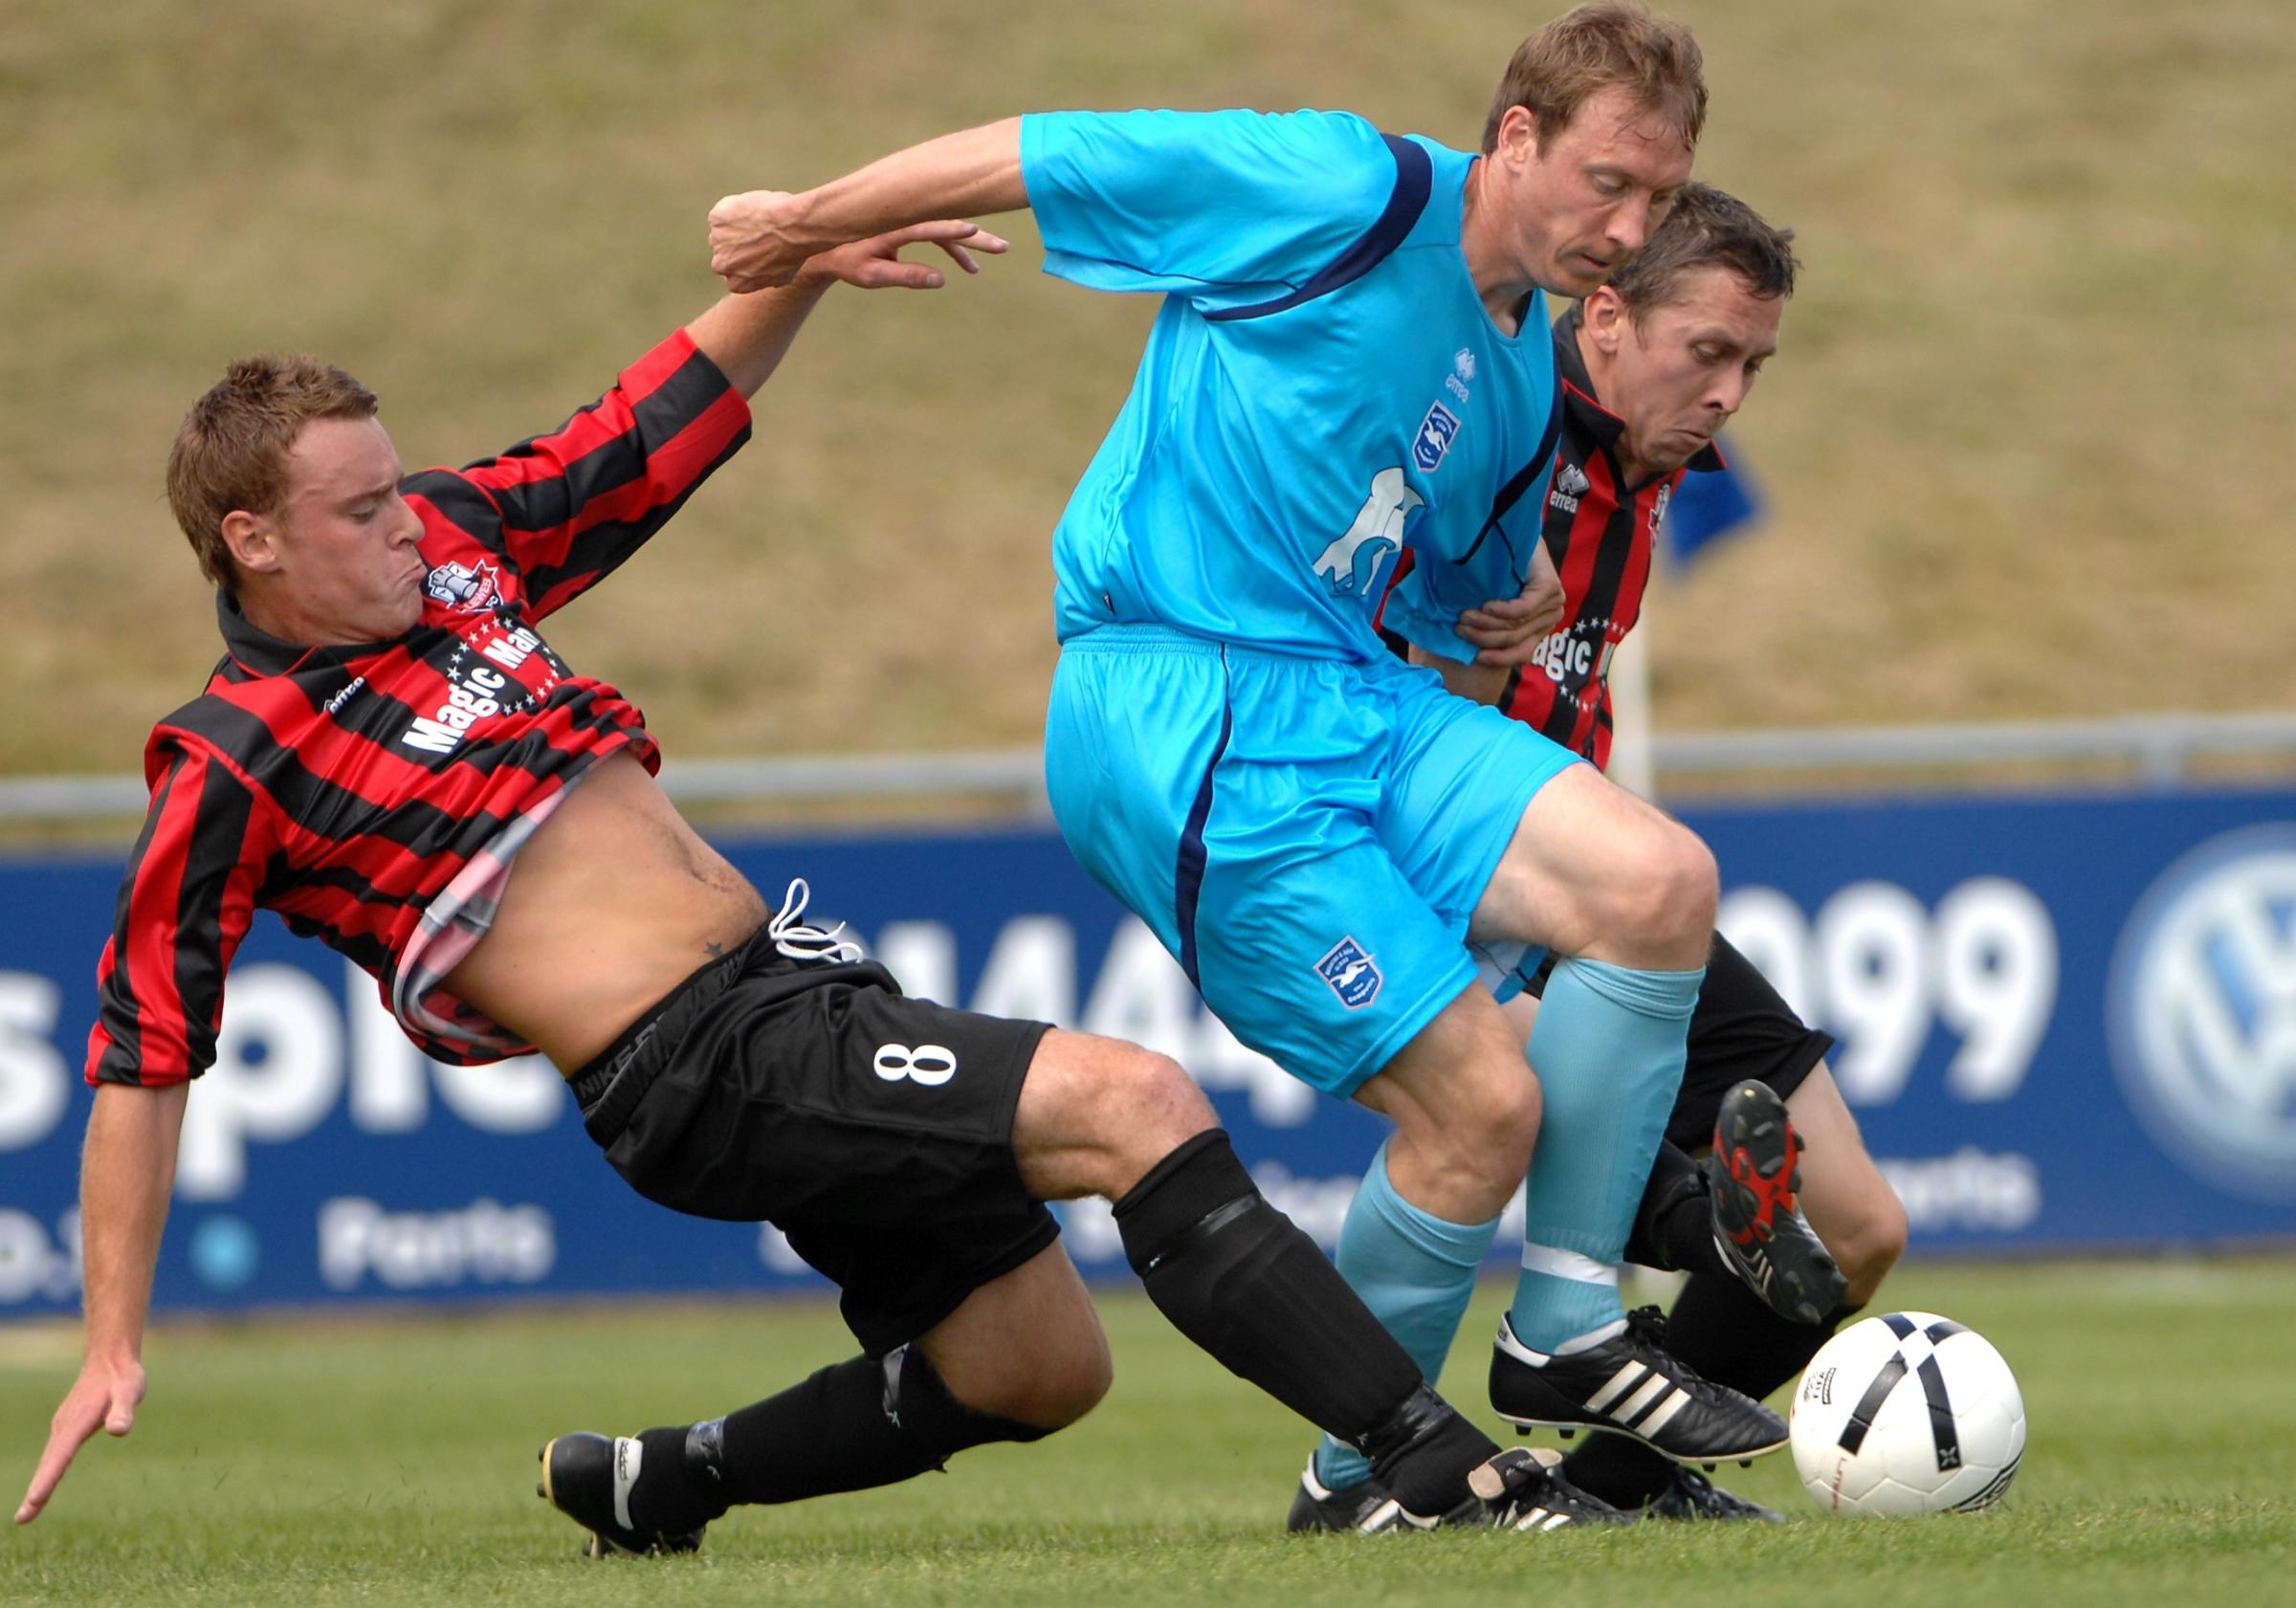 David Livermore is pre-season action at Lewes when Albion visited in 2008. They return in July.